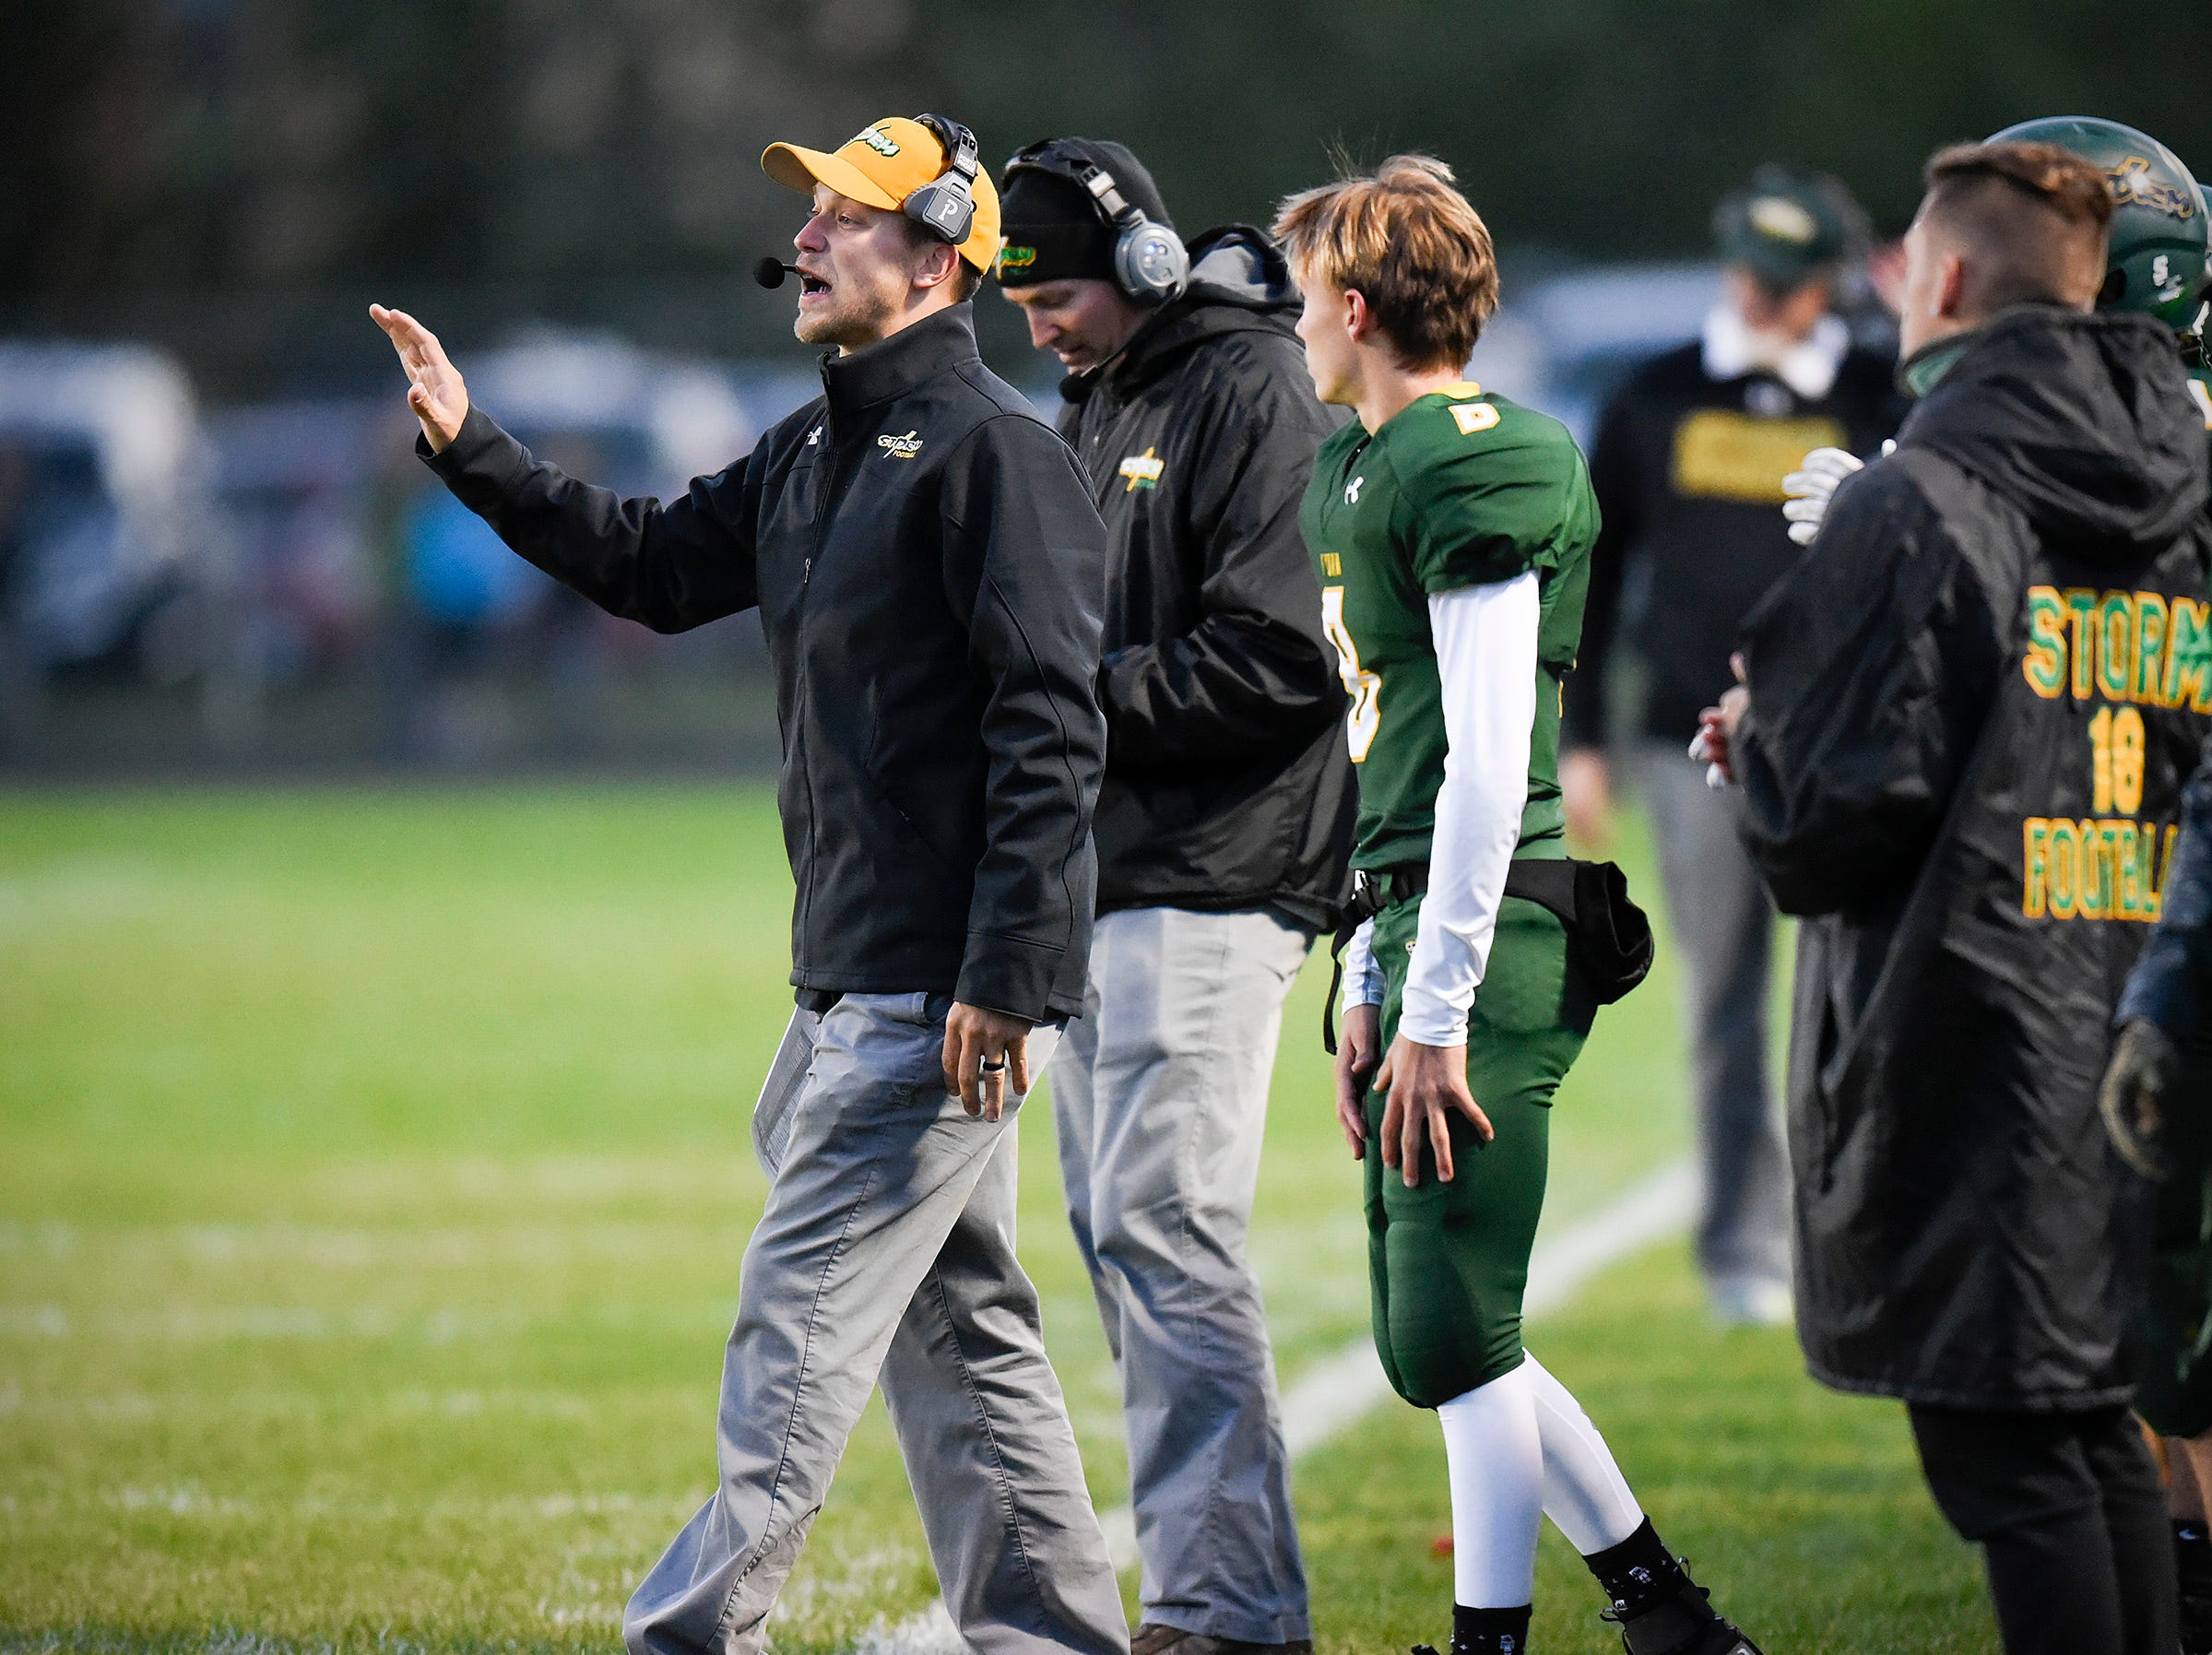 Sauk Rapids head coach Phillip Klaphake along the sidelines against Sartell during the first half Friday, Sept. 28, in Sauk Rapids.